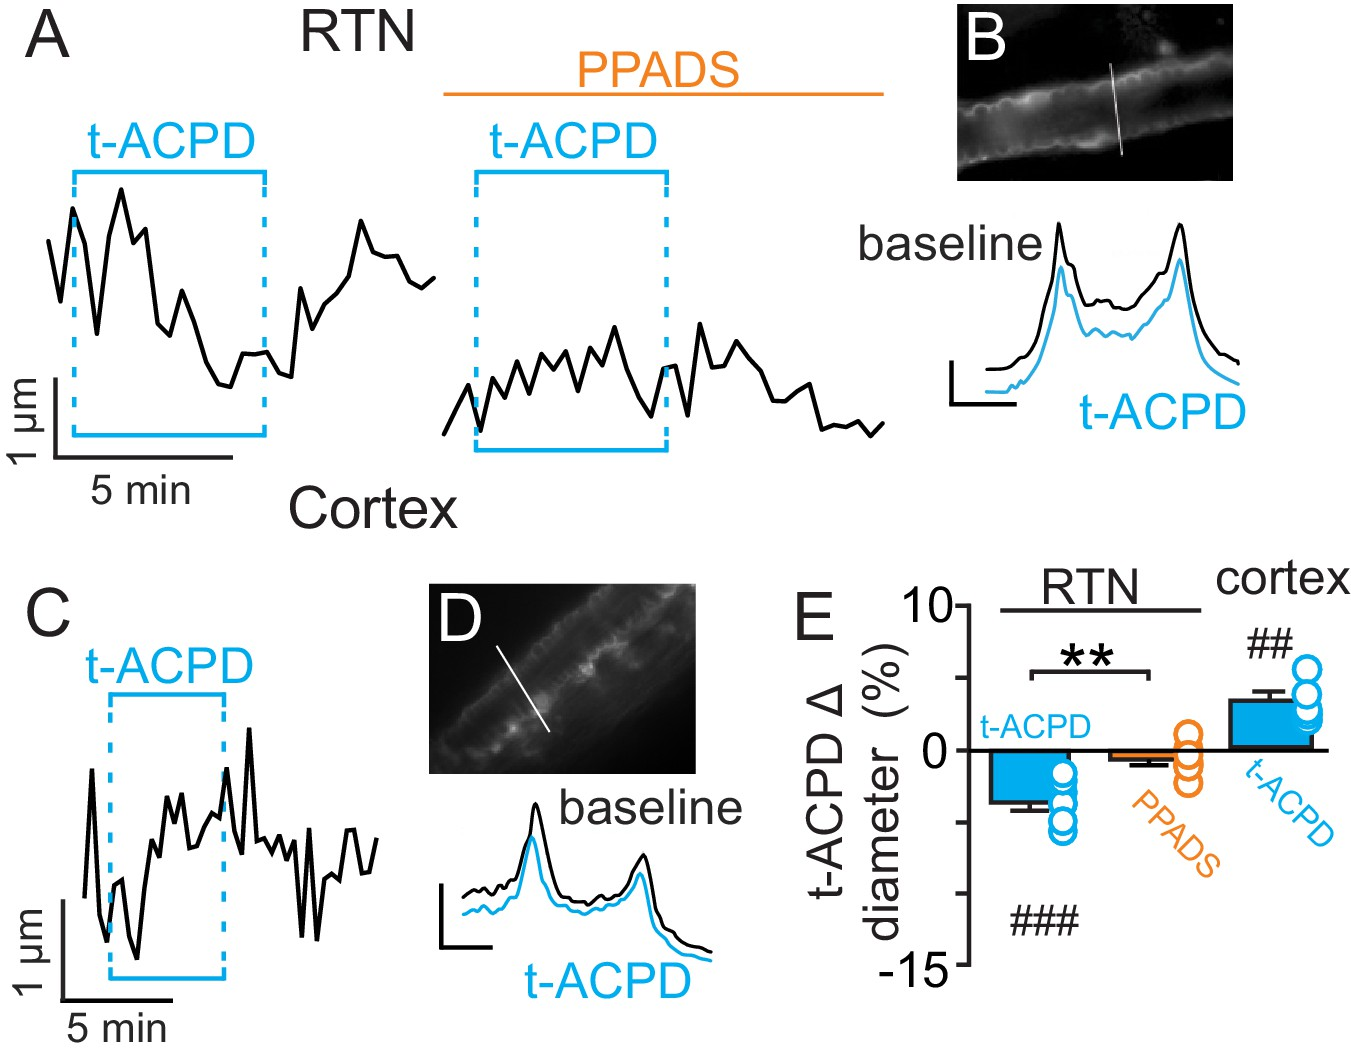 Purinergic Regulation Of Vascular Tone In The Retrotrapezoid Nucleus Instrument Air Dryer Symbol Additionally Relay Schematic T Acpd Mediated Astrocyte Activation Has Opposite Effects On Arteriole Diameter Rtn And Cortex